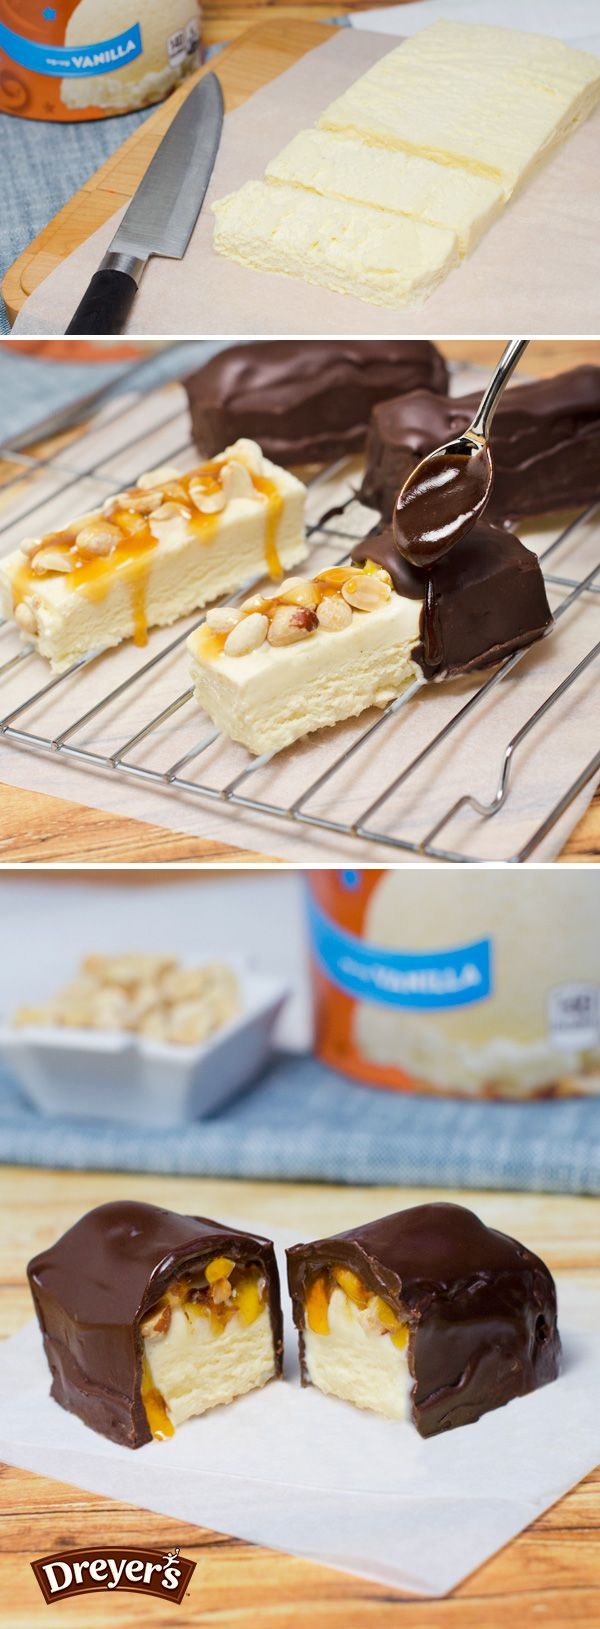 This crispy, crunchy treats starts with adding Dreyer's Vanilla ice cream into a rectangle, then slice it into individual bars. Place these slices on a baking rack with parchment paper underneath. A great dessert needs some crunch, so for this recipe, add your favorite type of nuts on top. Drizzle on some caramel, and then drench each piece with a rich layer of chocolate. Freeze before serving!